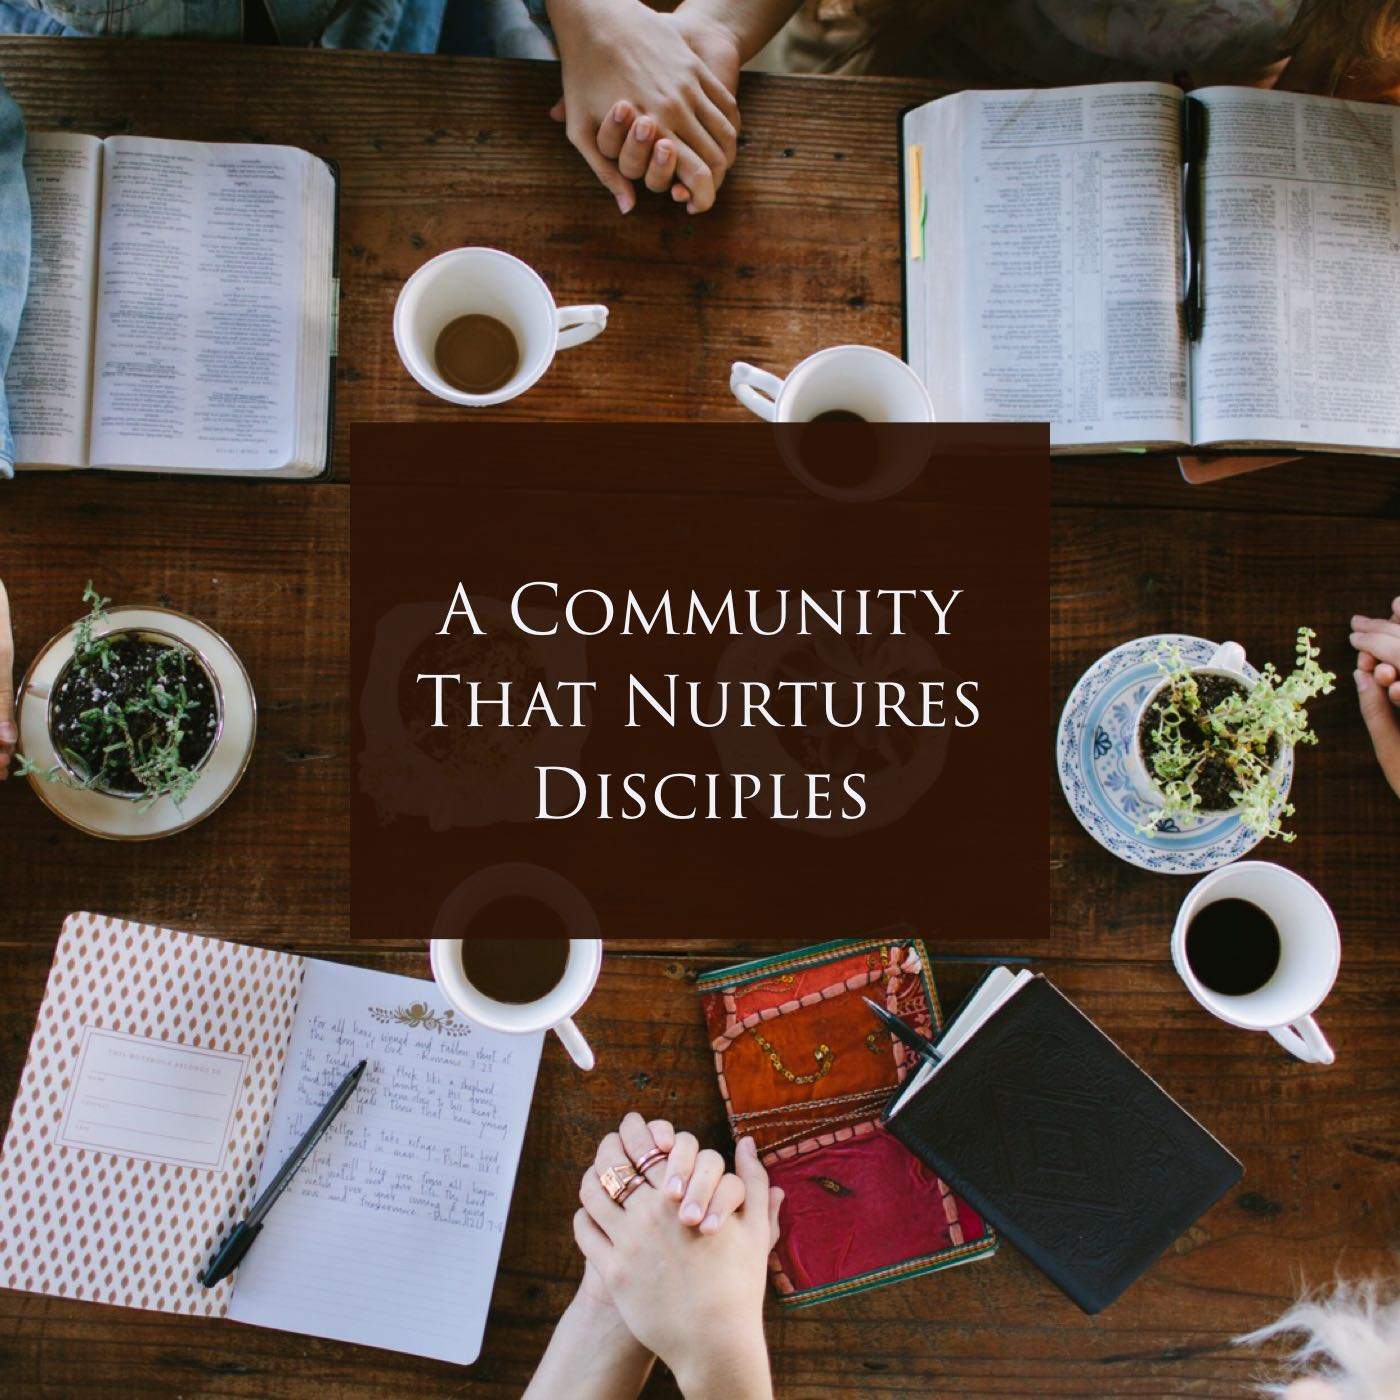 A Community That Nurtures Disciples